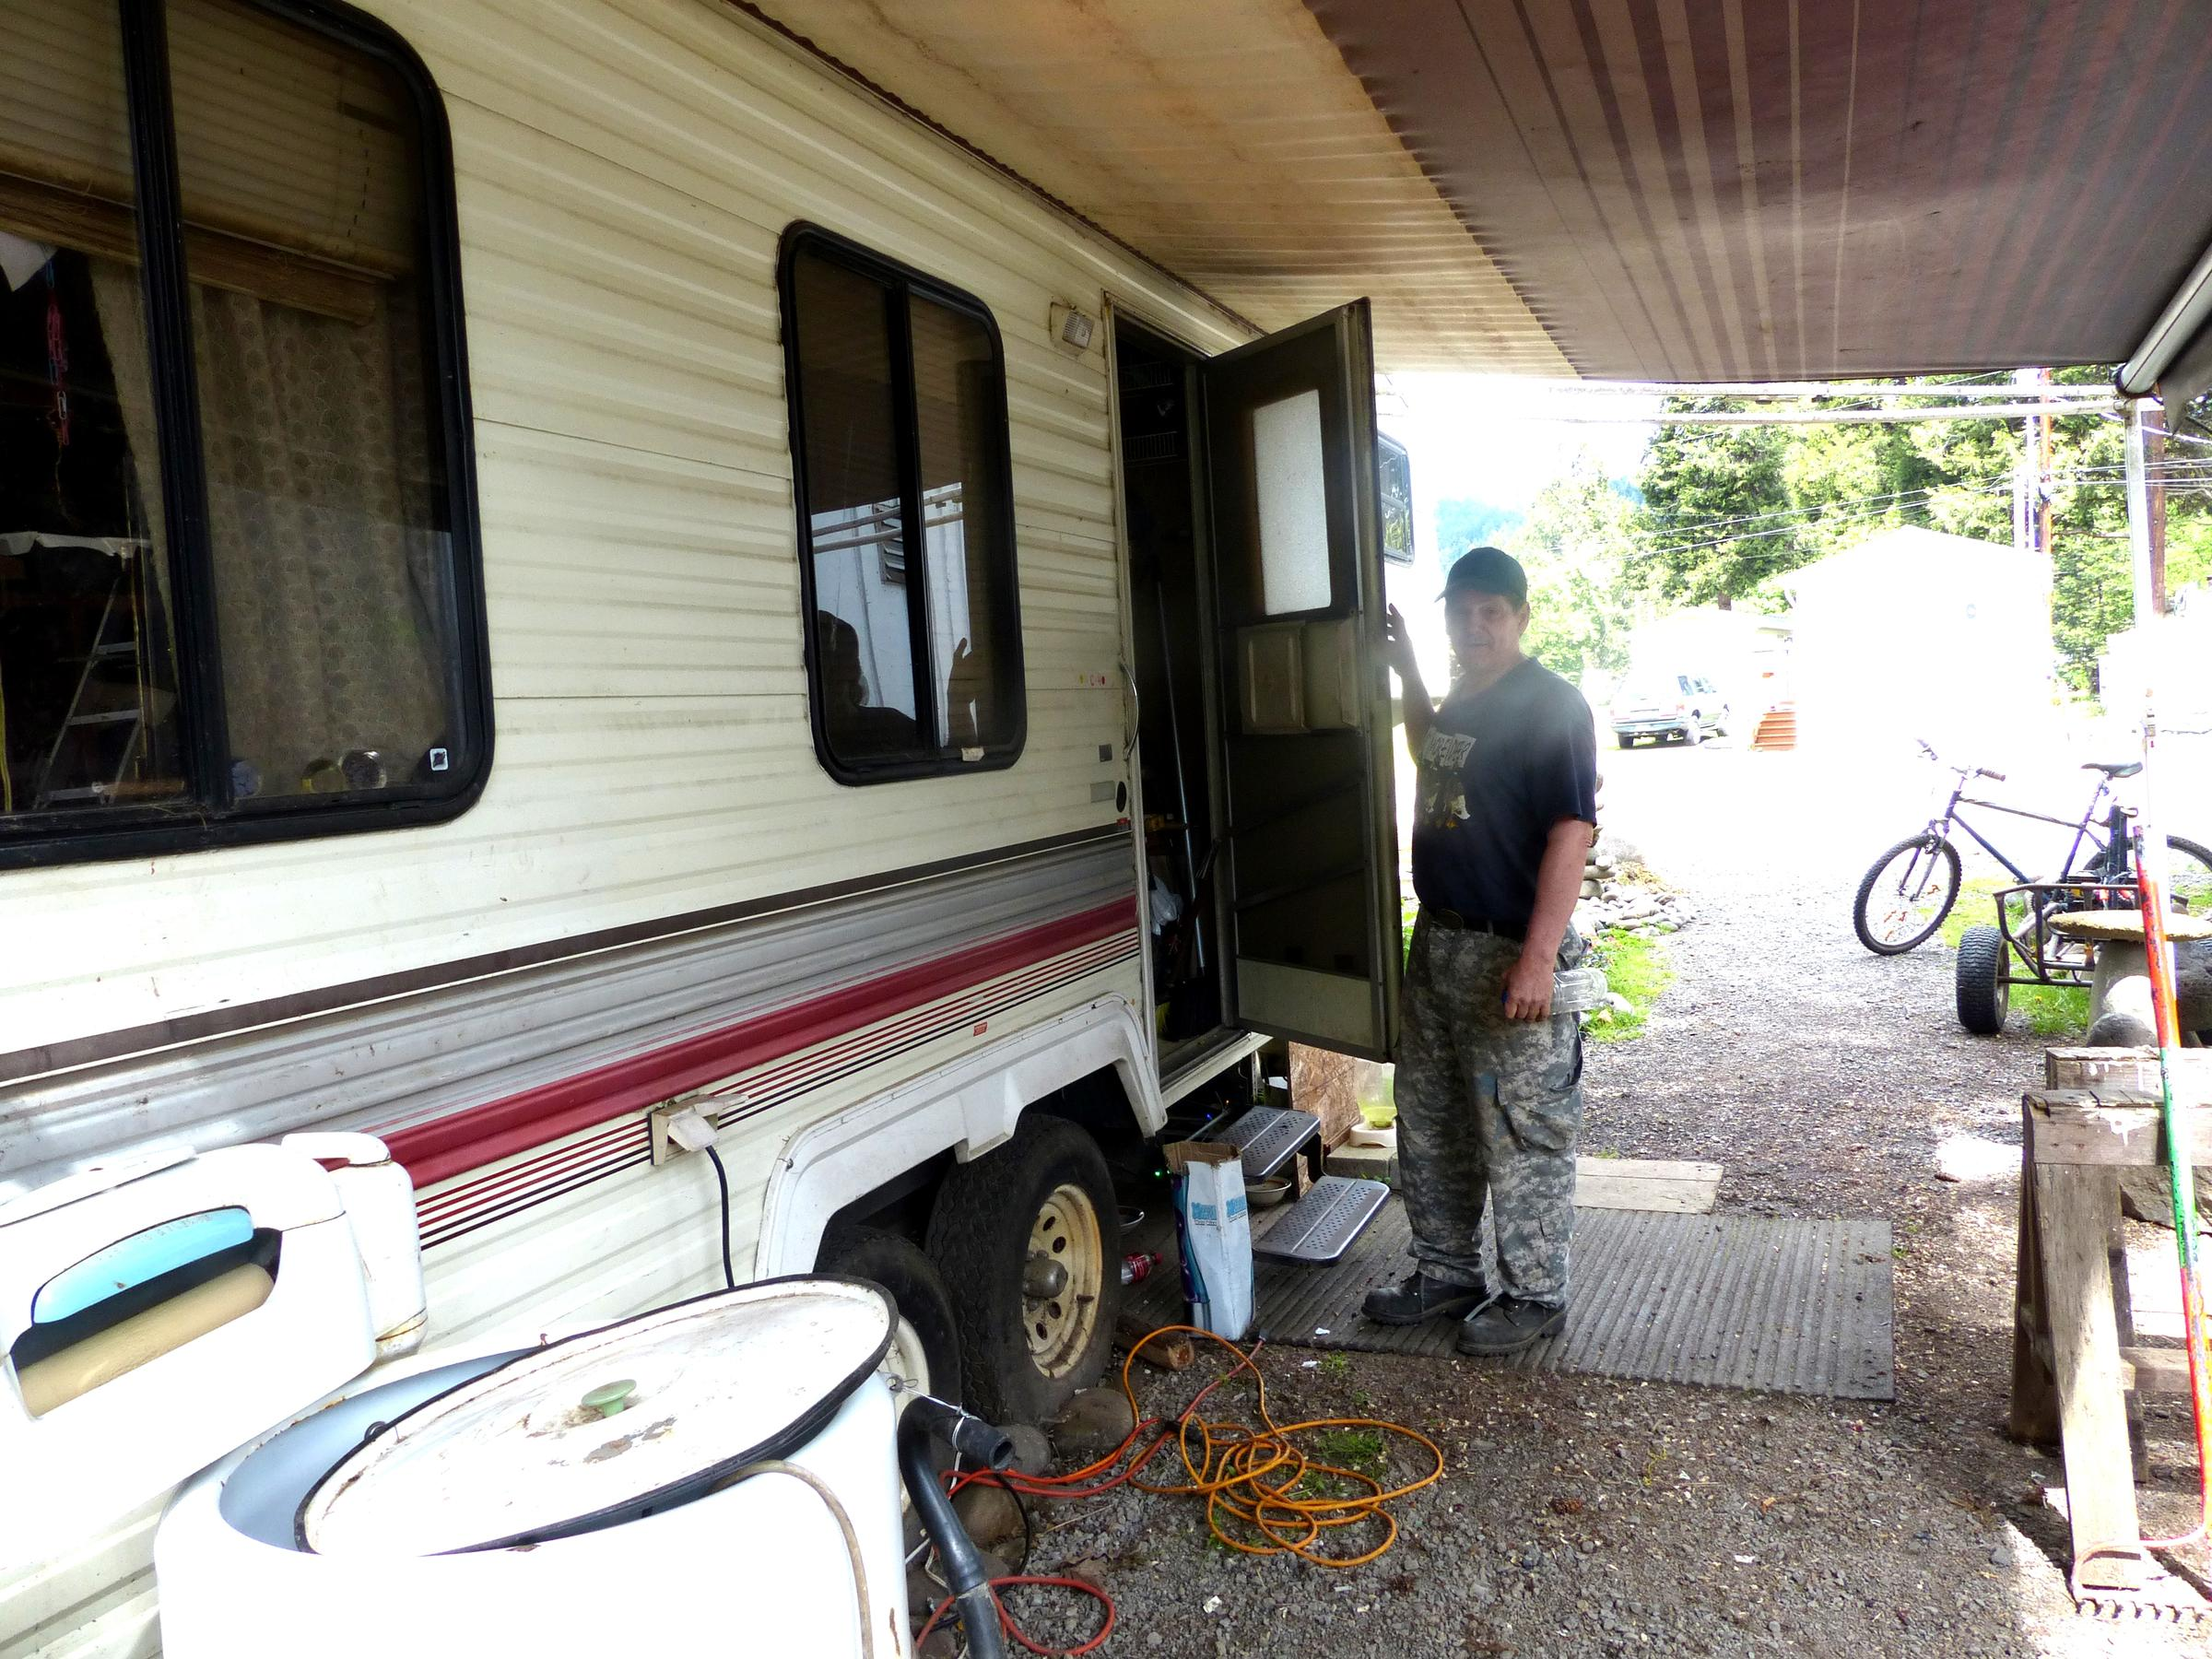 Glen Brewer Has Lived In This 5th Wheel Trailer At Oakridge Mobile Home Park For 10 Years